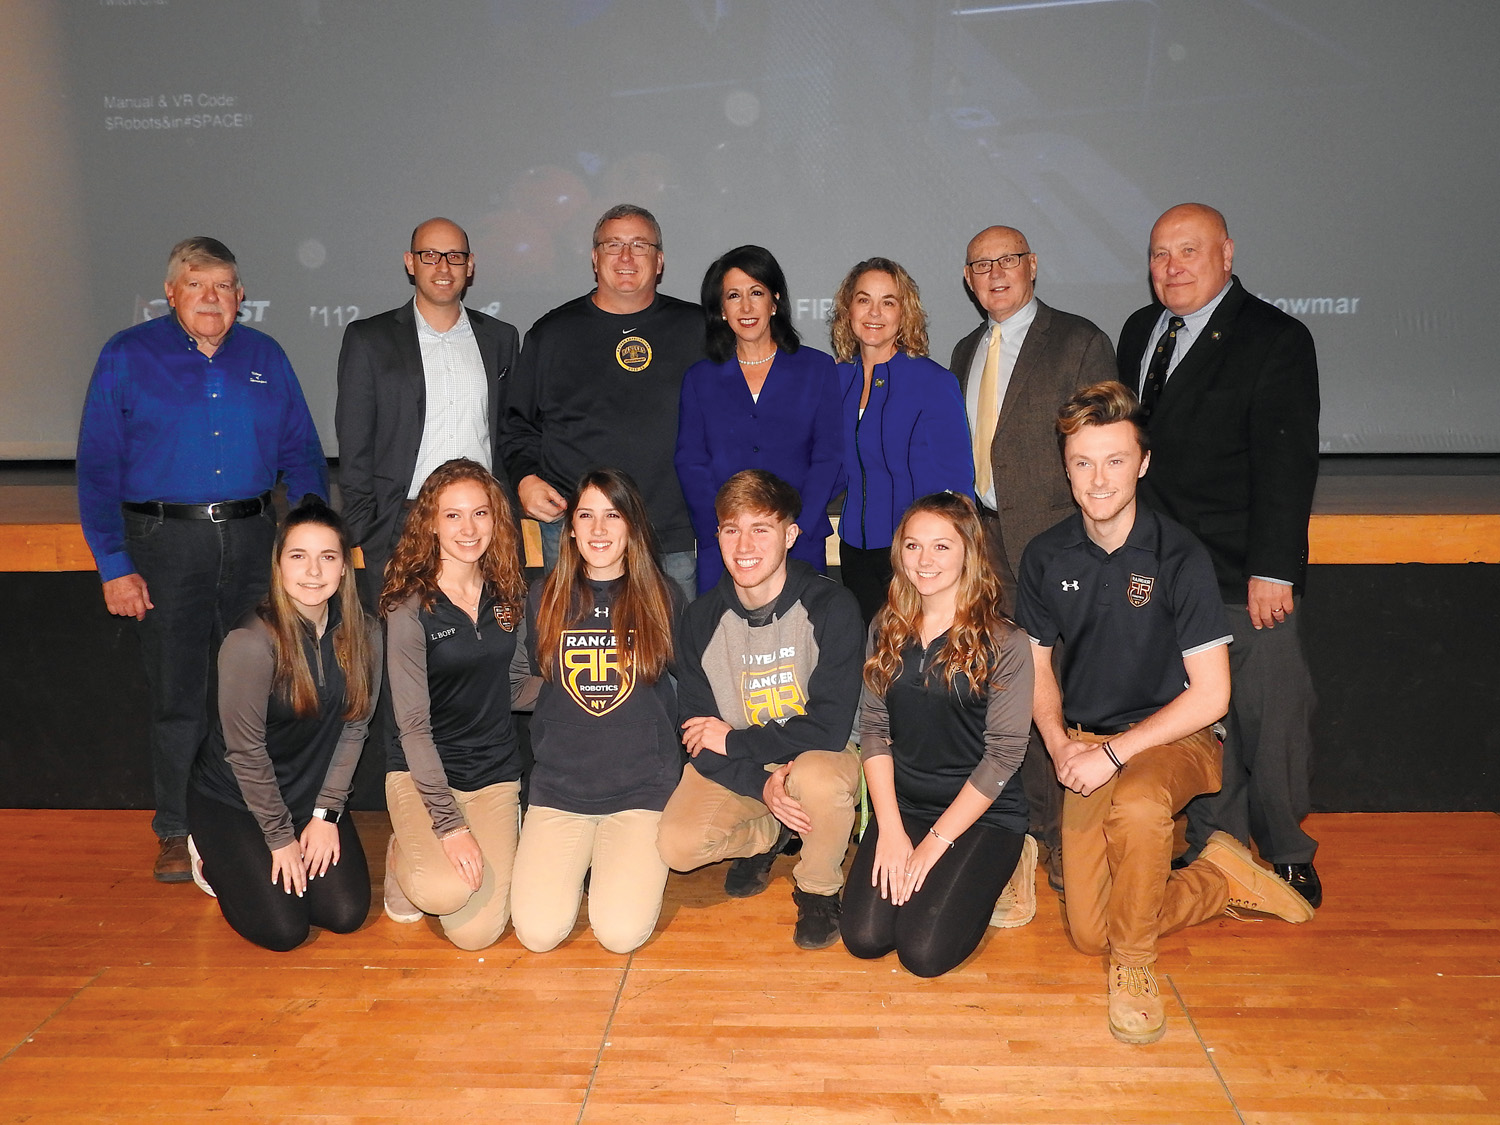 Local officials attended the kickoff to show their support of students participating in the FIRST® Robotics 2019 Challenge. Back row (l-r): Gary Penders (Spencerport Village Mayor), Mike Zale (County Legislator), Dan Milgate (Spencerport SCSD Superintendent), Cheryl DiNolfo (County Executive), Traci DiFlorio (County Legislator) Frank Alkoffer (County Legislator), George Hebert (County Legislator). Front row (l-r): Spencerport students Abby Case, Leigha Bopp, Tori Warner, Justin Hockenberger, Alyssa Epping, Sean Bracken (President of Team 3015 Ranger Robotics).